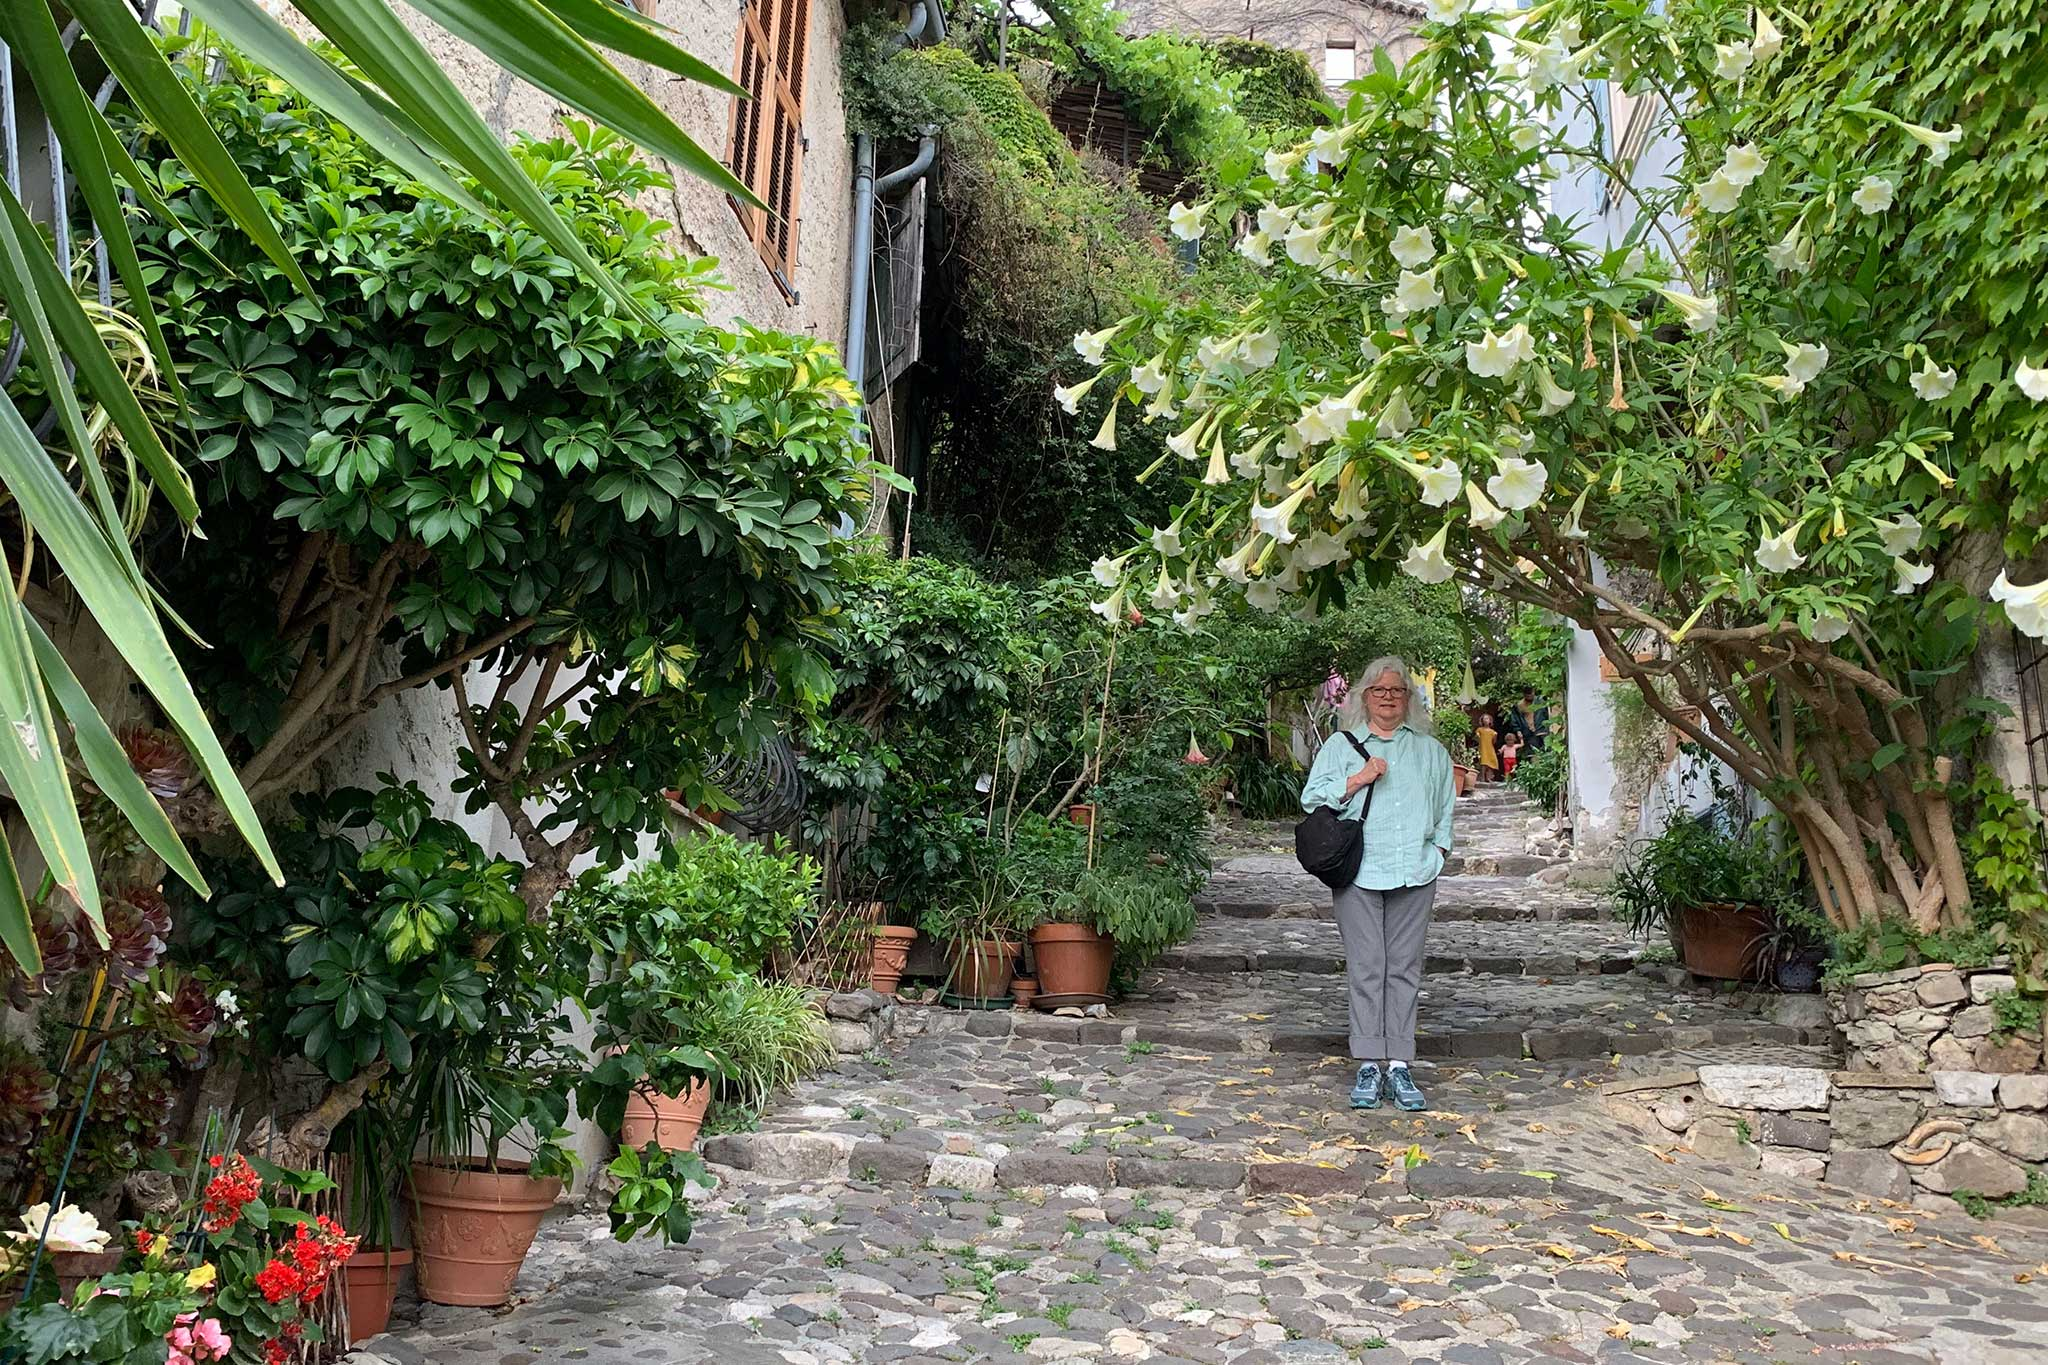 Steve And Carole In Vence - Biot